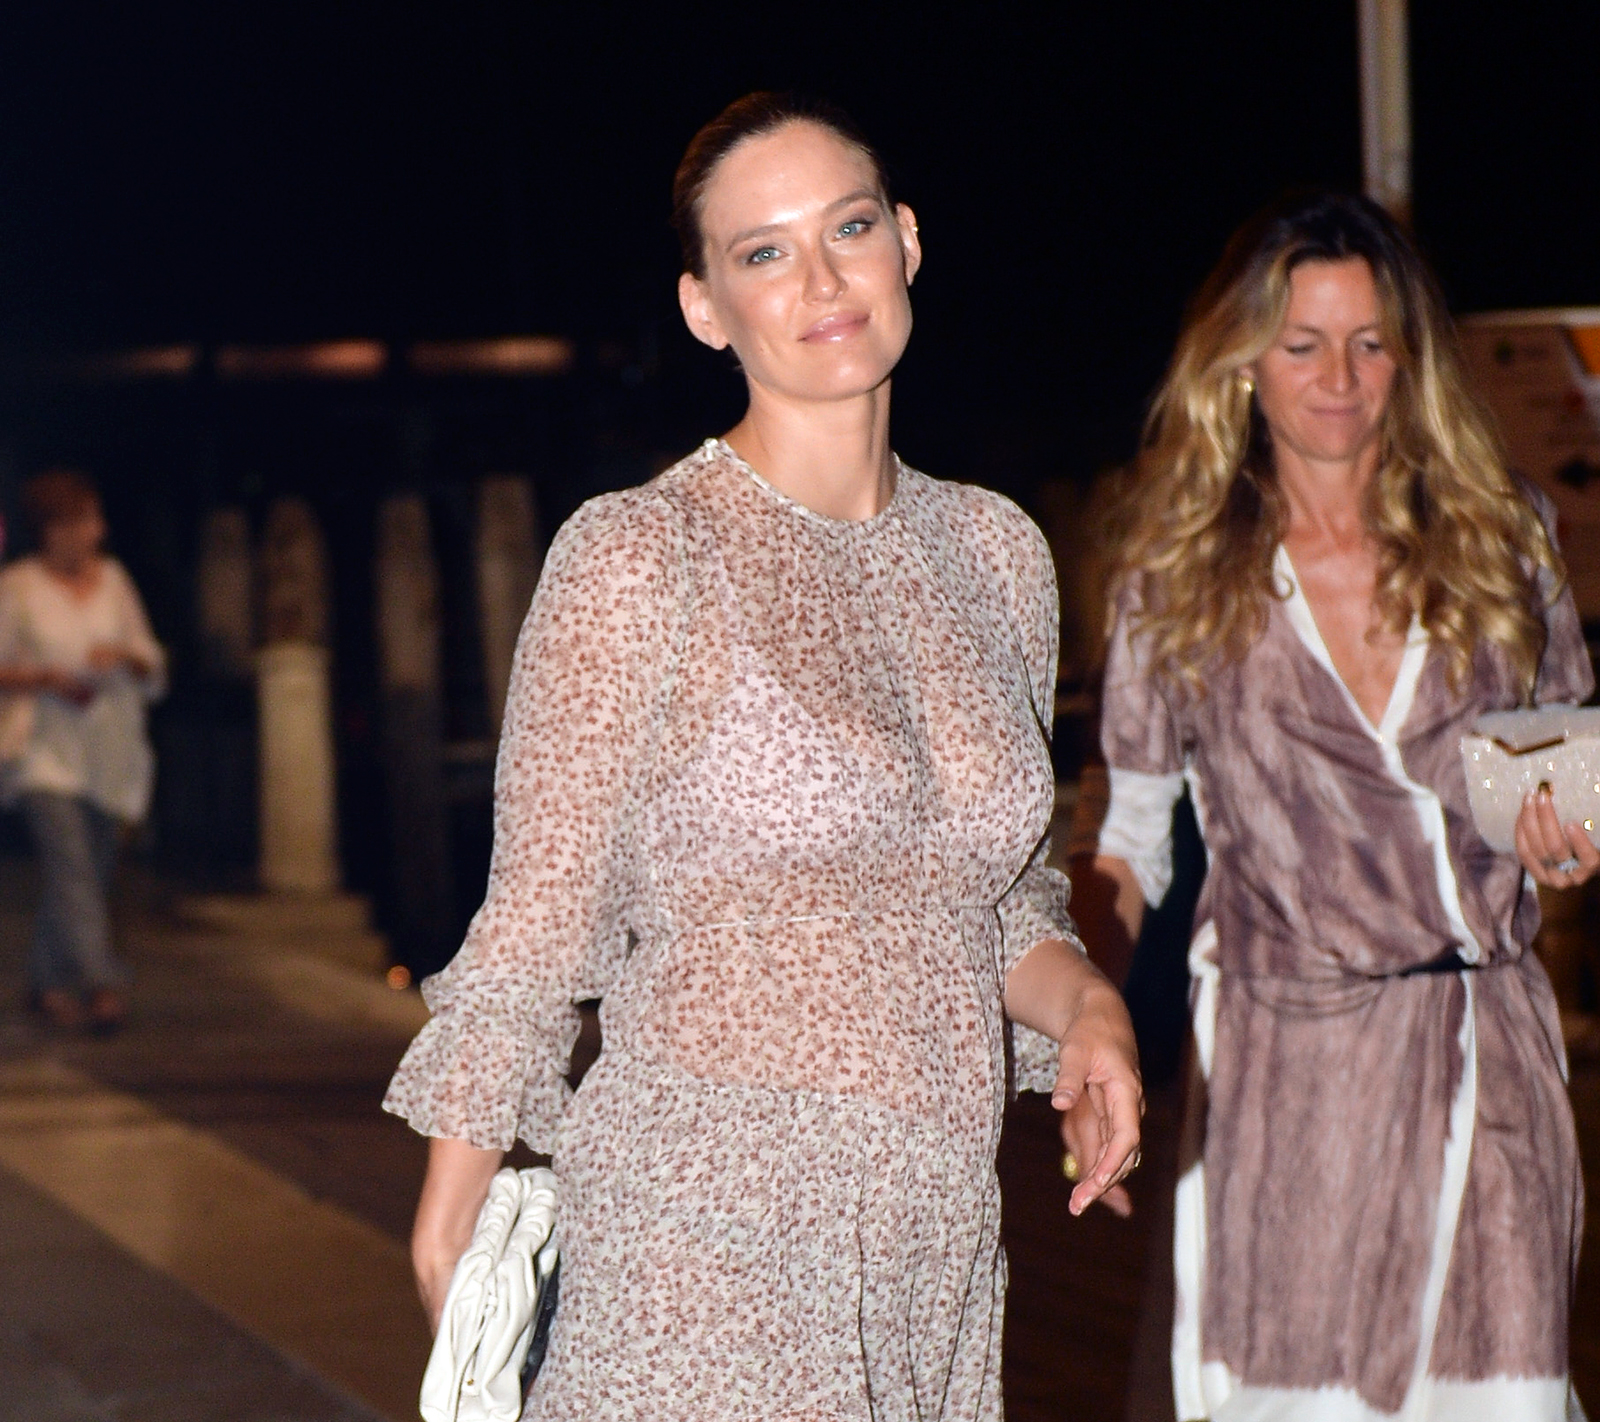 Bar Rafaeli Shows Off Baby Bump in Sheer Dress While Out in Italy